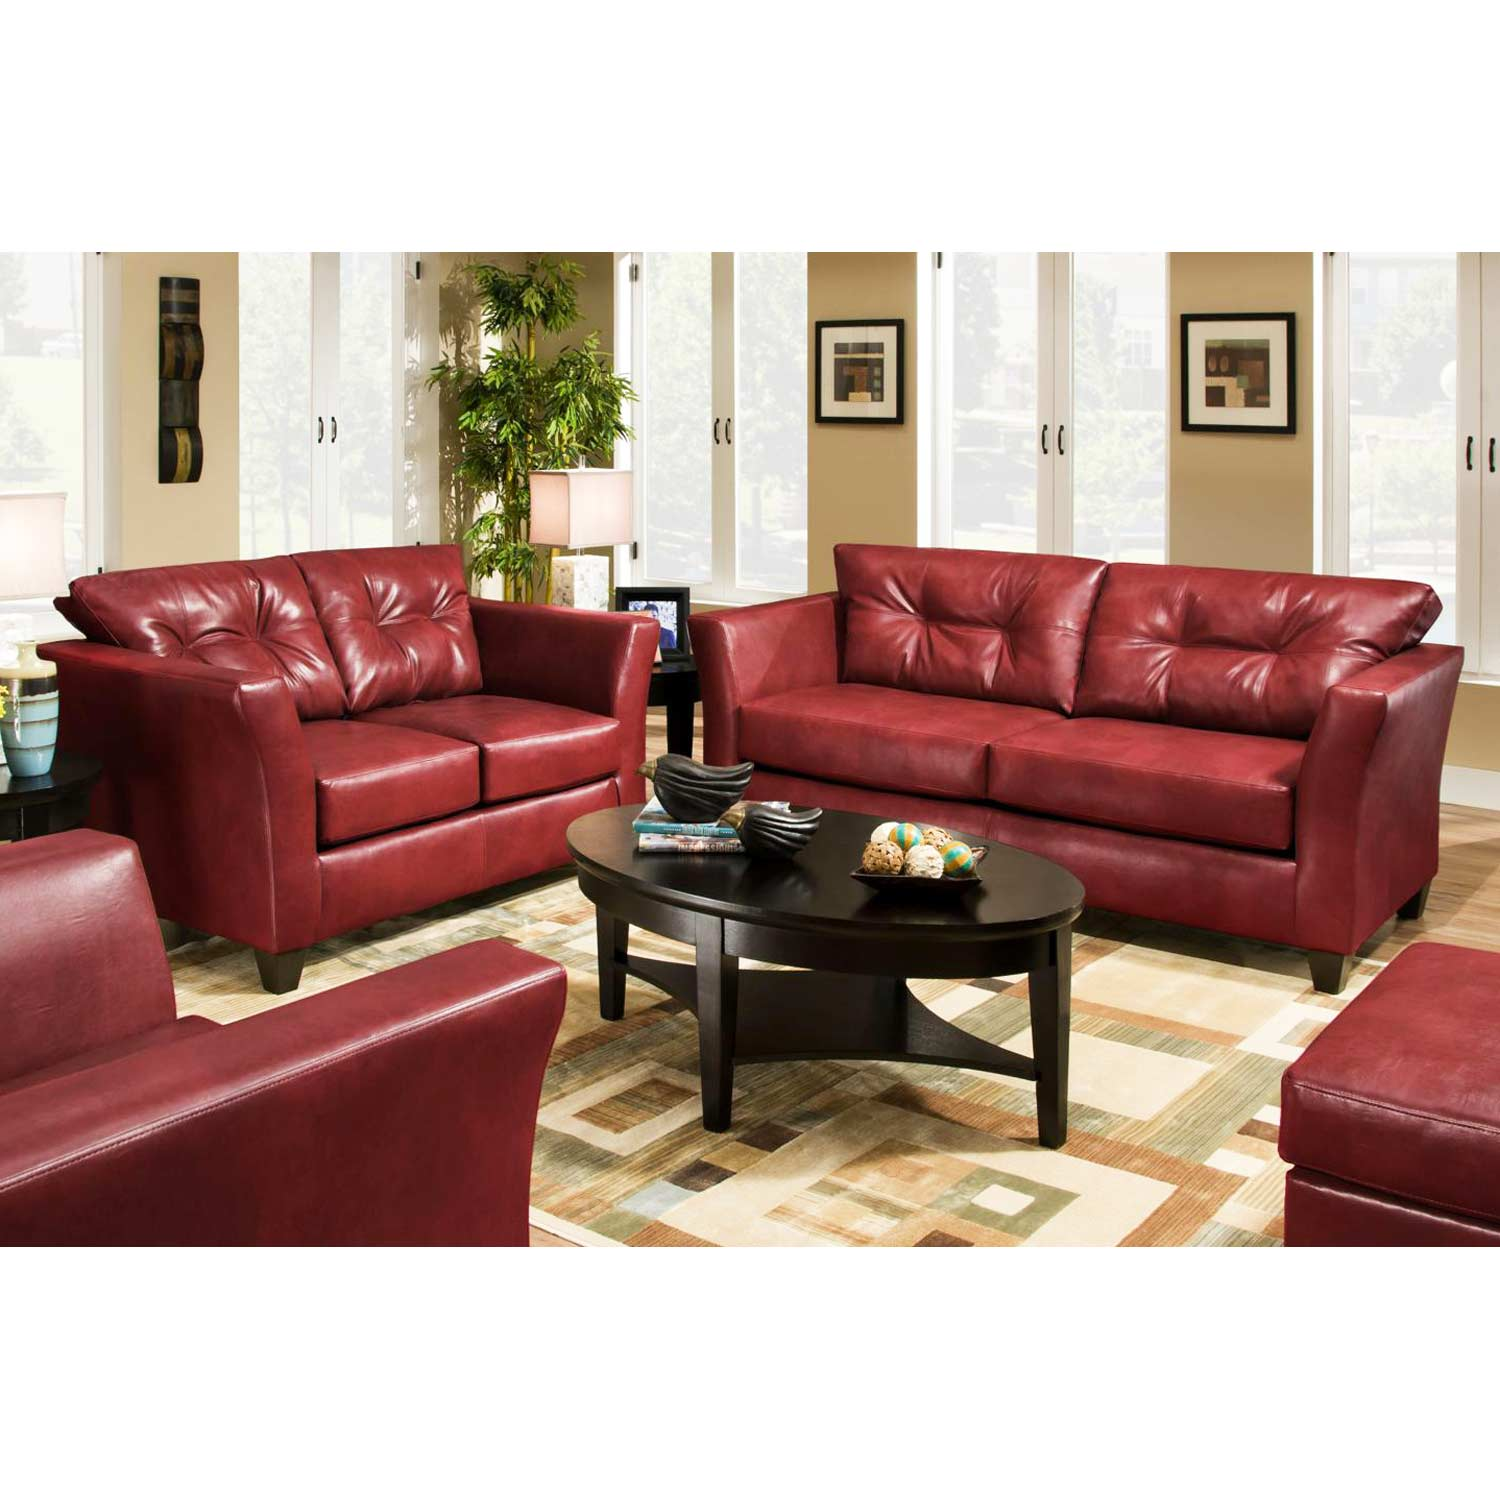 del mar custom sectional sofa oriental tufted leather tonto strawberry dcg stores